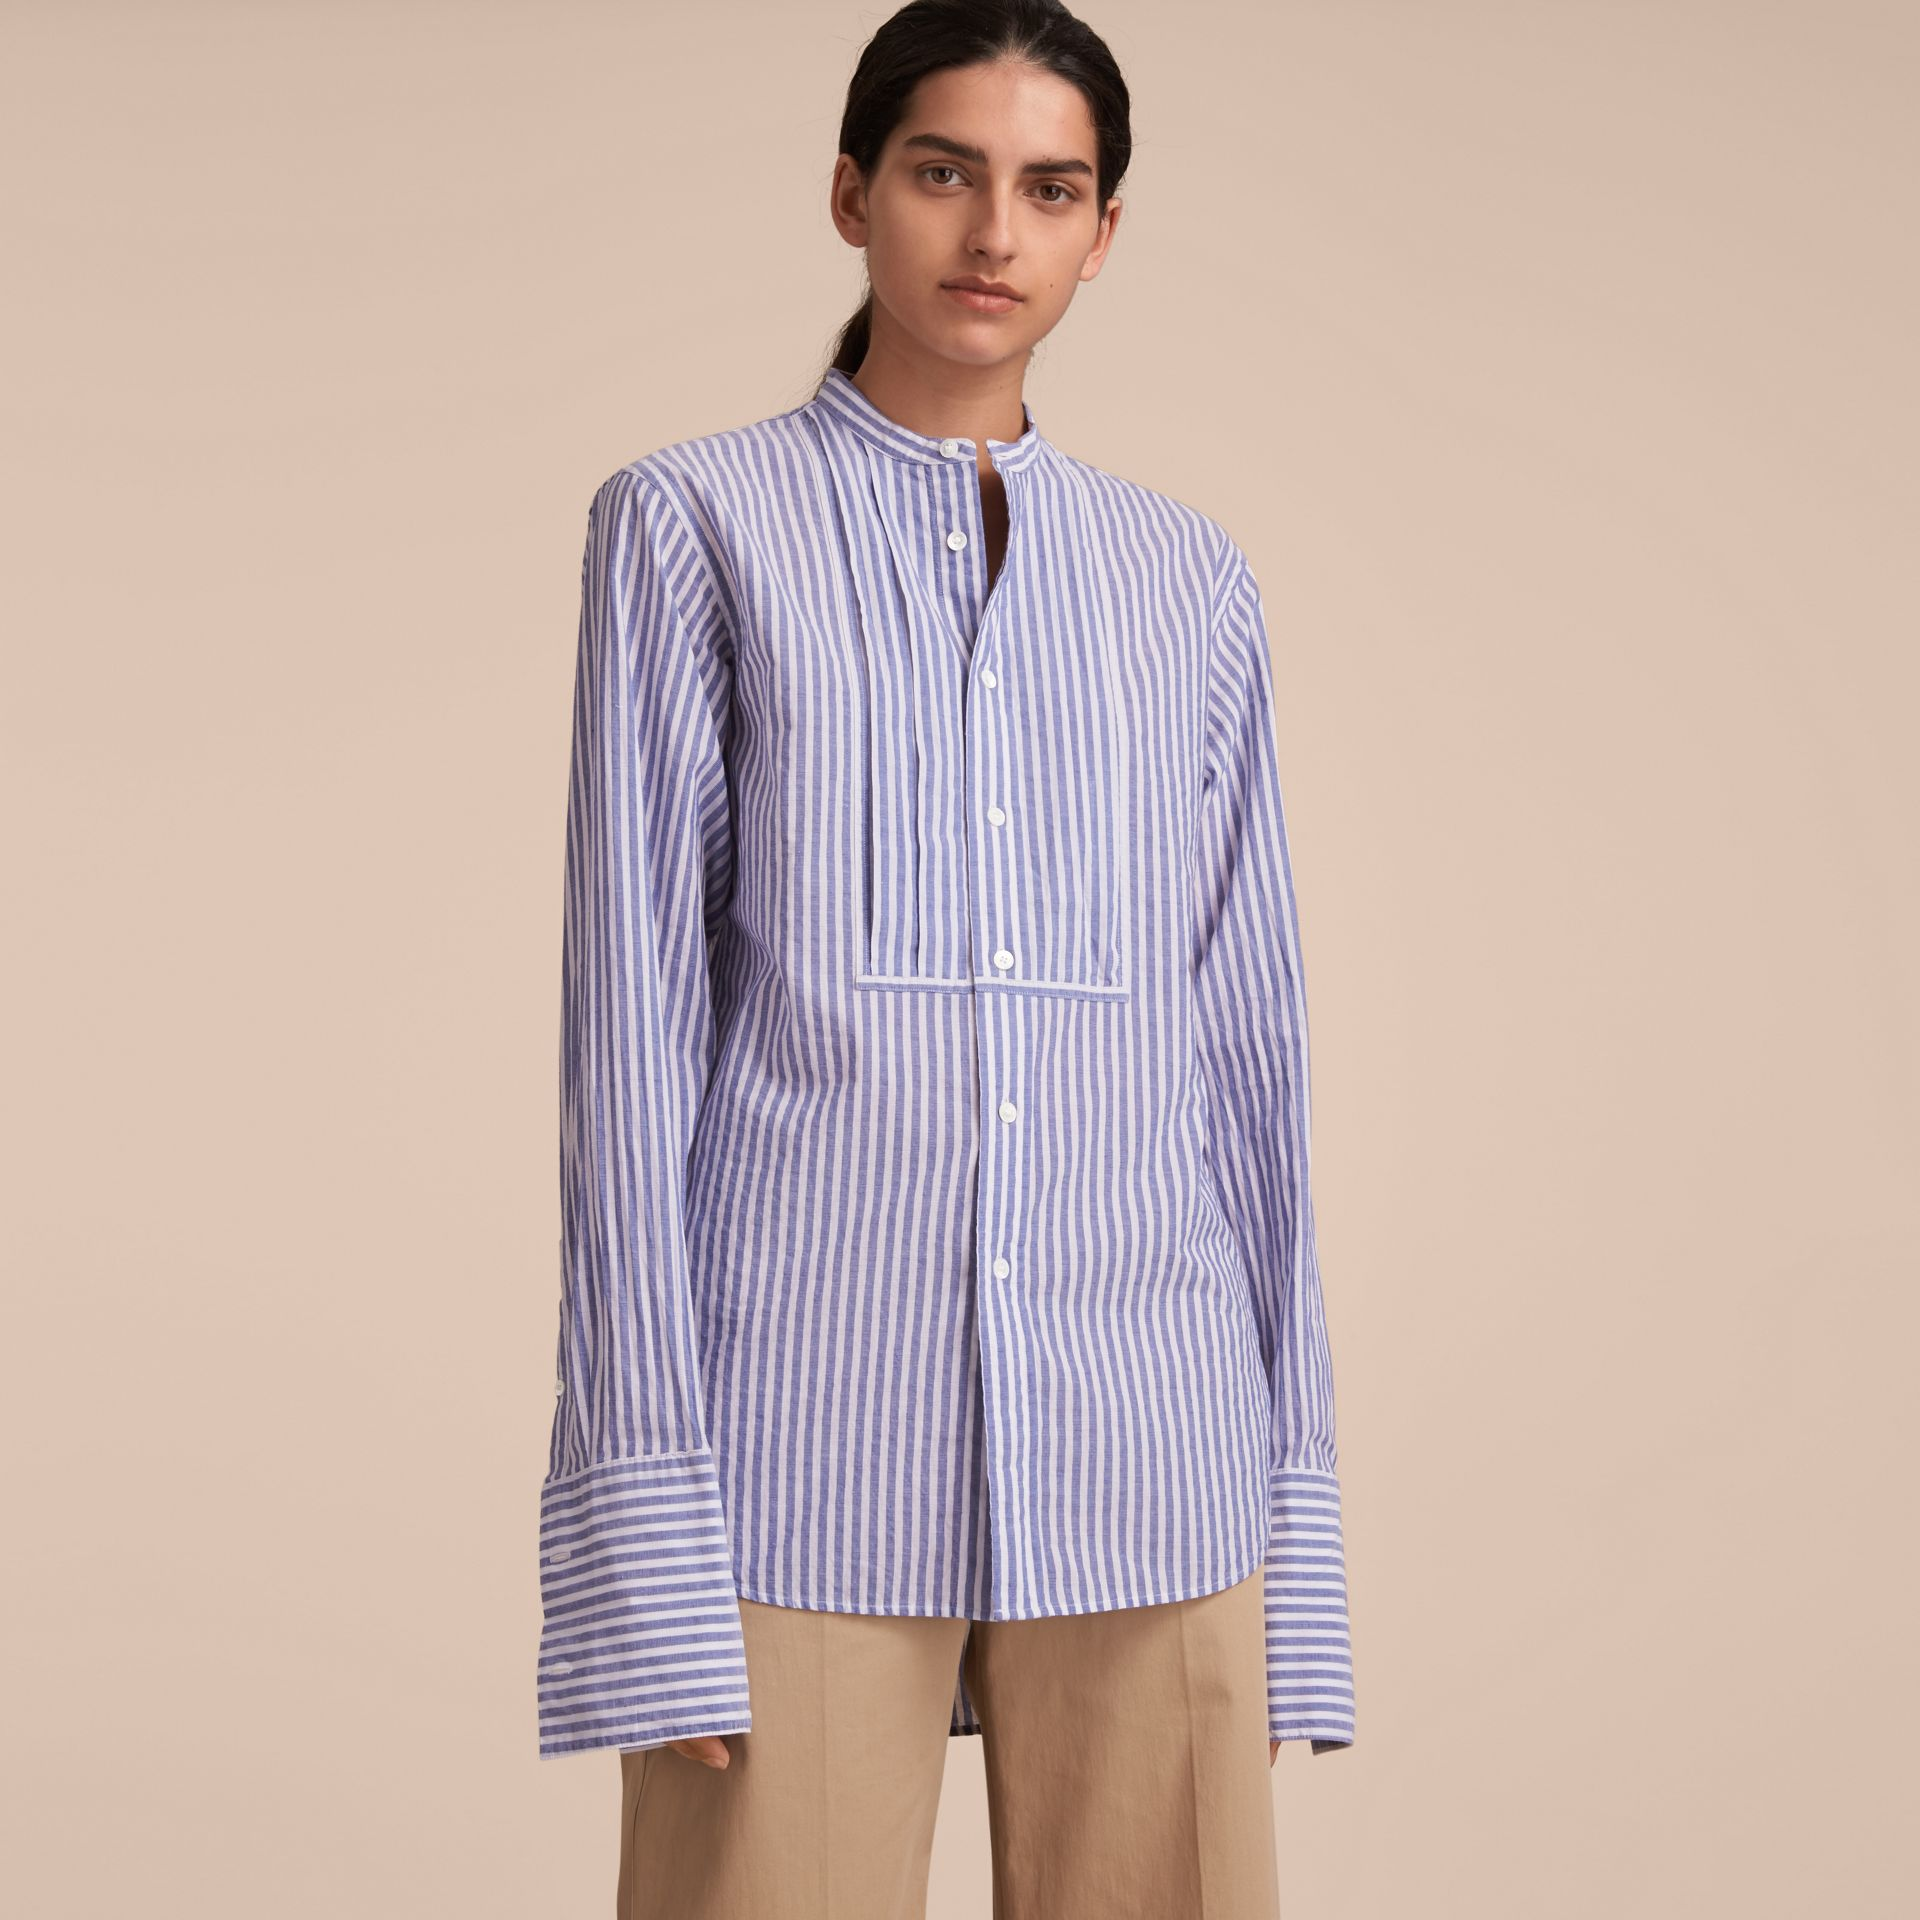 Unisex Grandad Collar Pleated Bib Striped Cotton Shirt in Pale Blue/white - Women | Burberry - gallery image 7